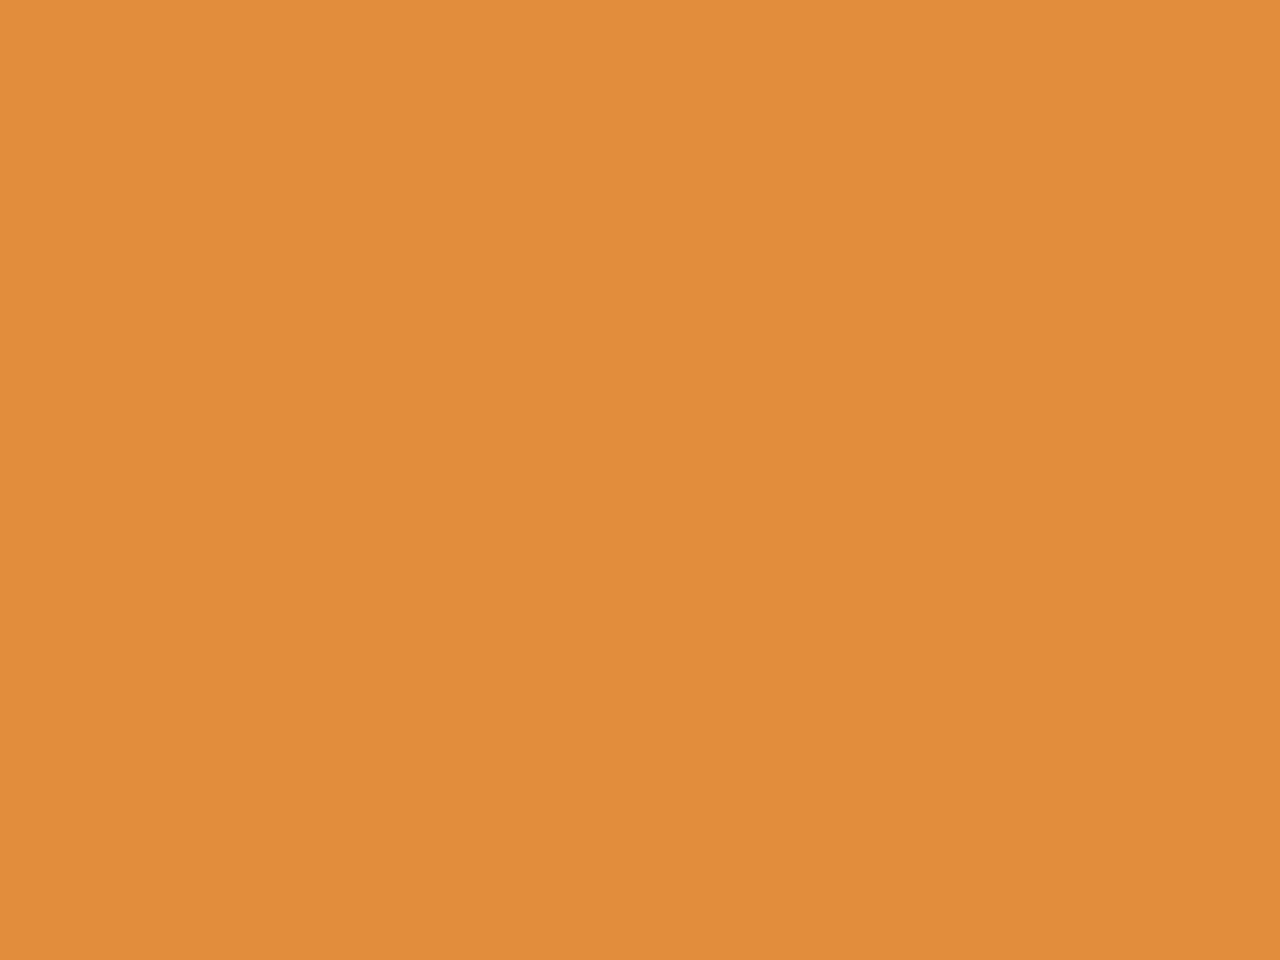 1280x960 Tigers Eye Solid Color Background